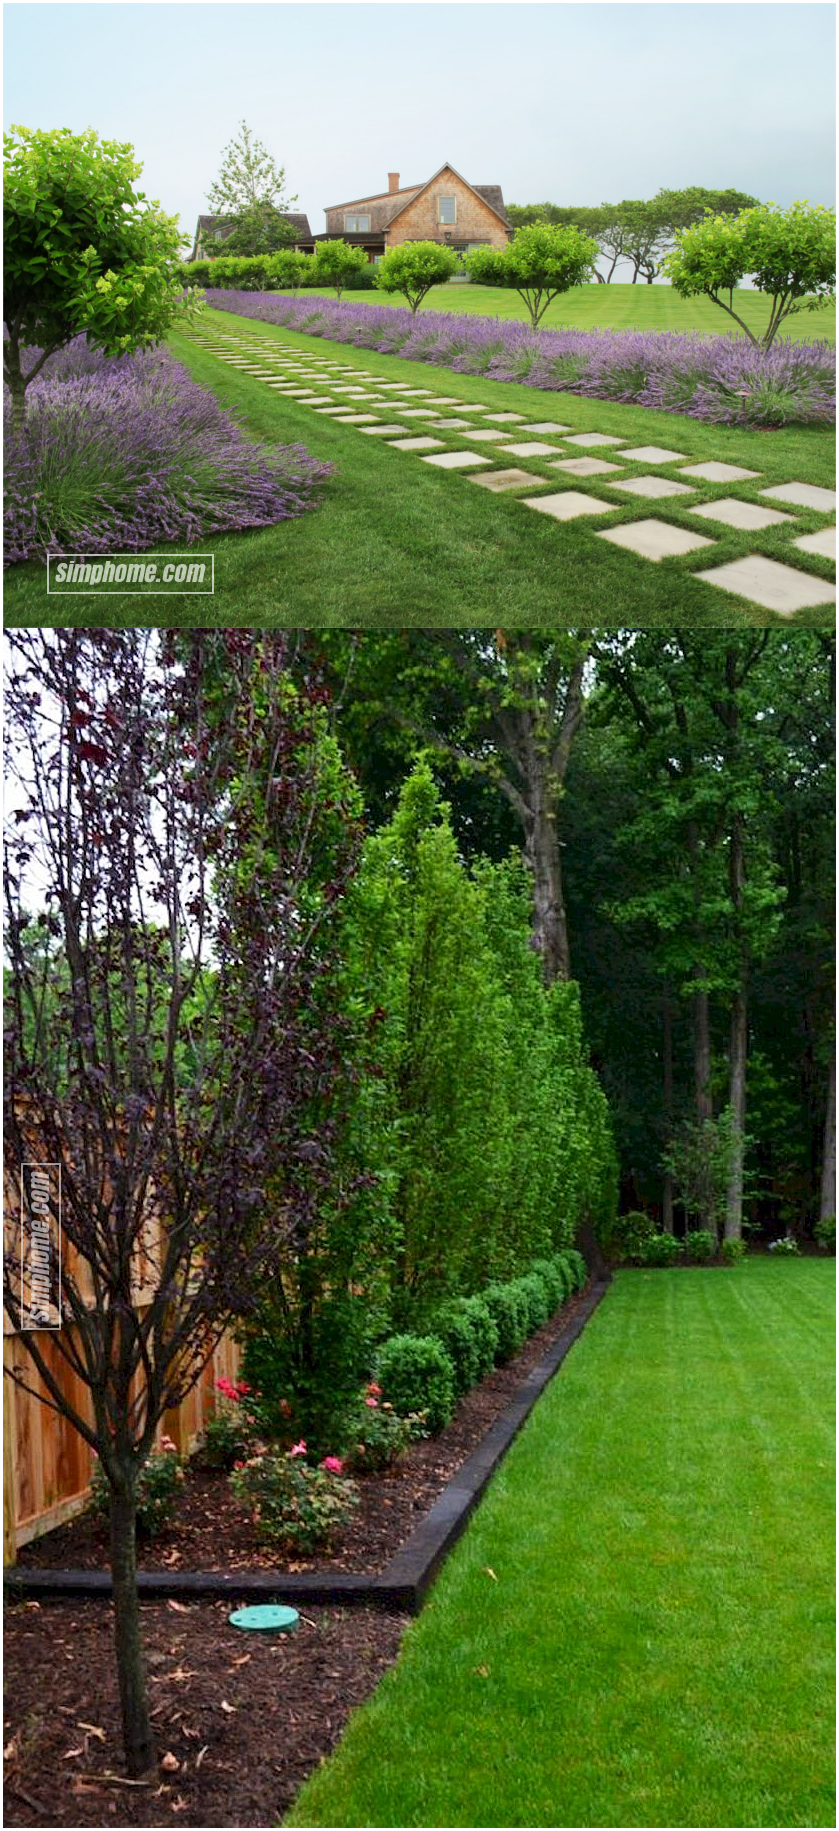 20.SIMPHOME.COM beautiful landscaping ideas and backyard privacy fence landscaping ideas on a budget